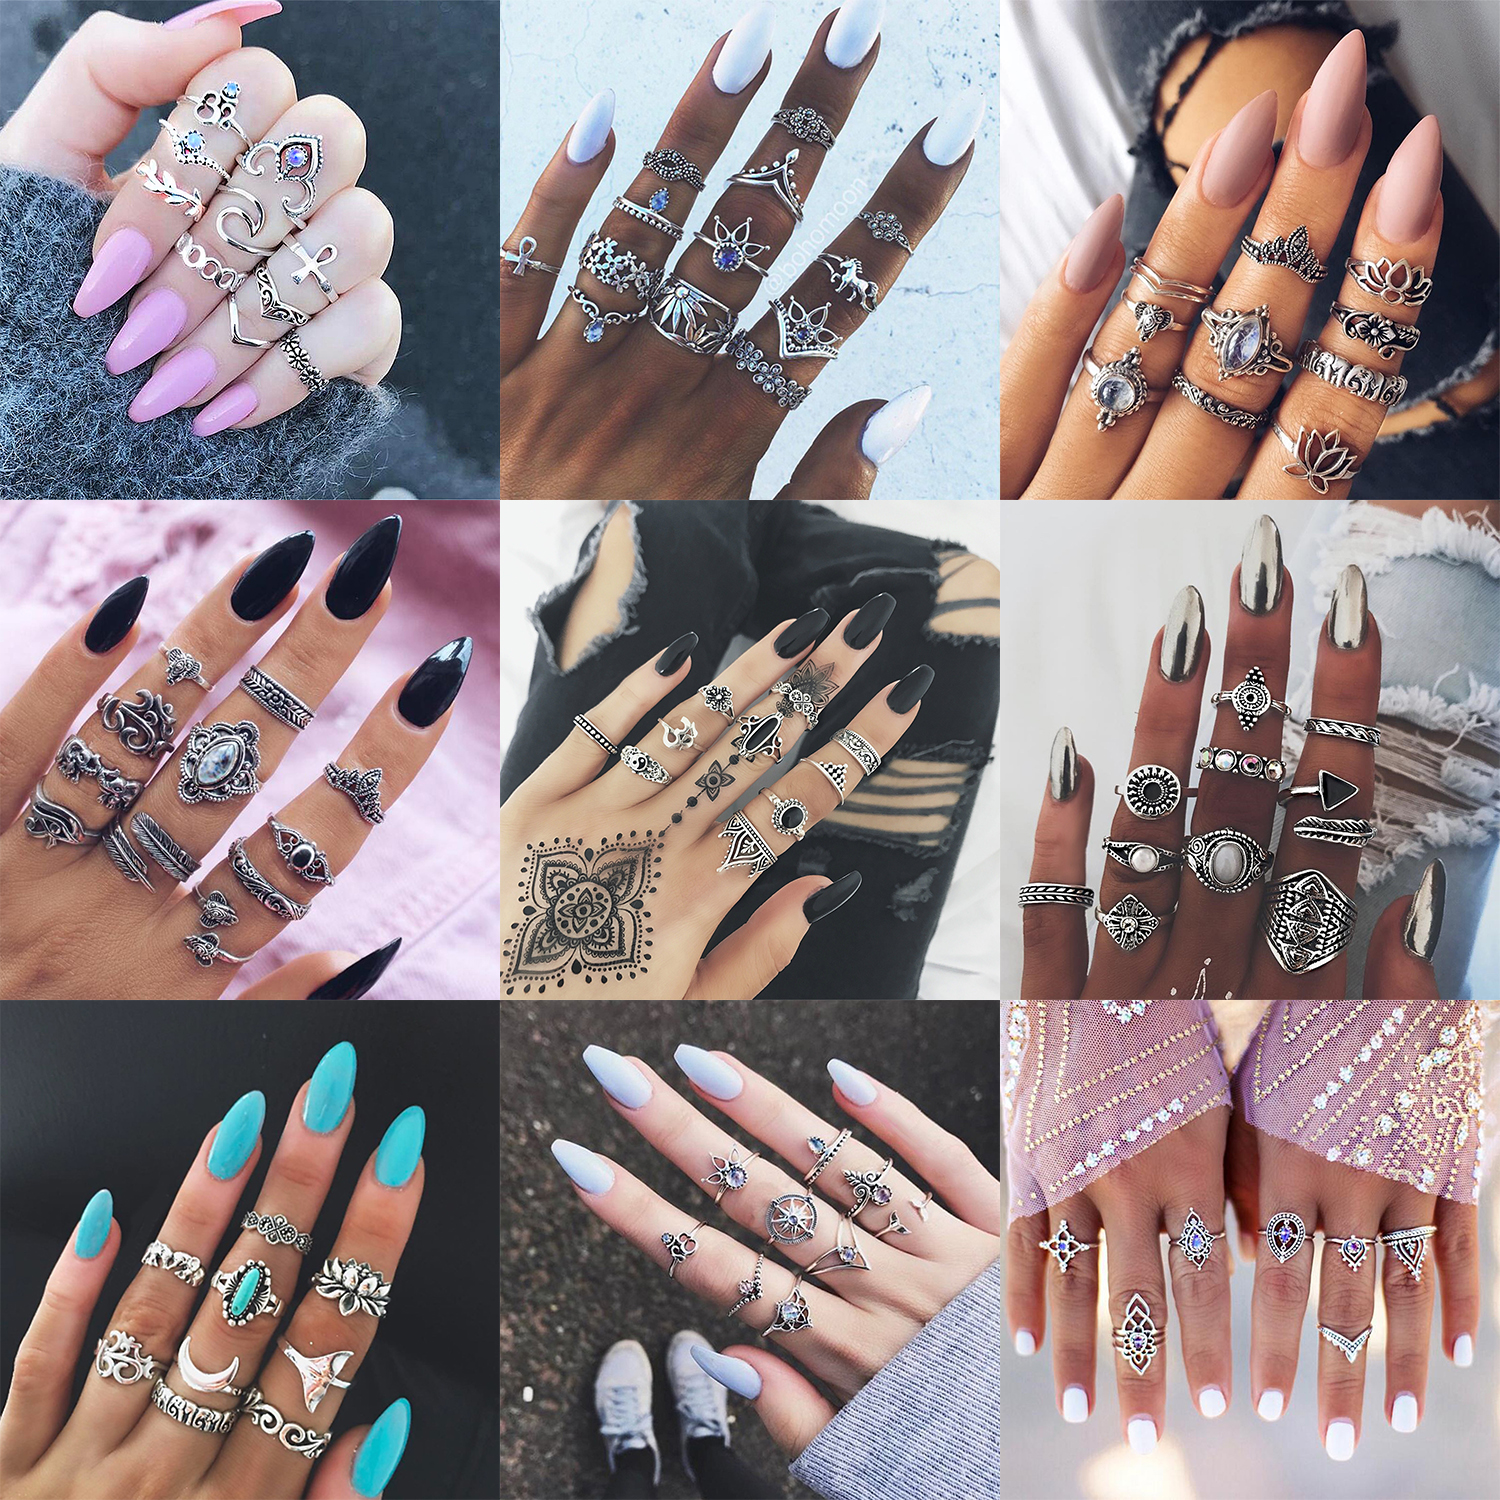 Boho Jewelry Stone Midi Ring Sets for Women Anel Vintage Tibetan Turkish Silver Color Flower Knuckle Rings Gift 10 pcs/Set